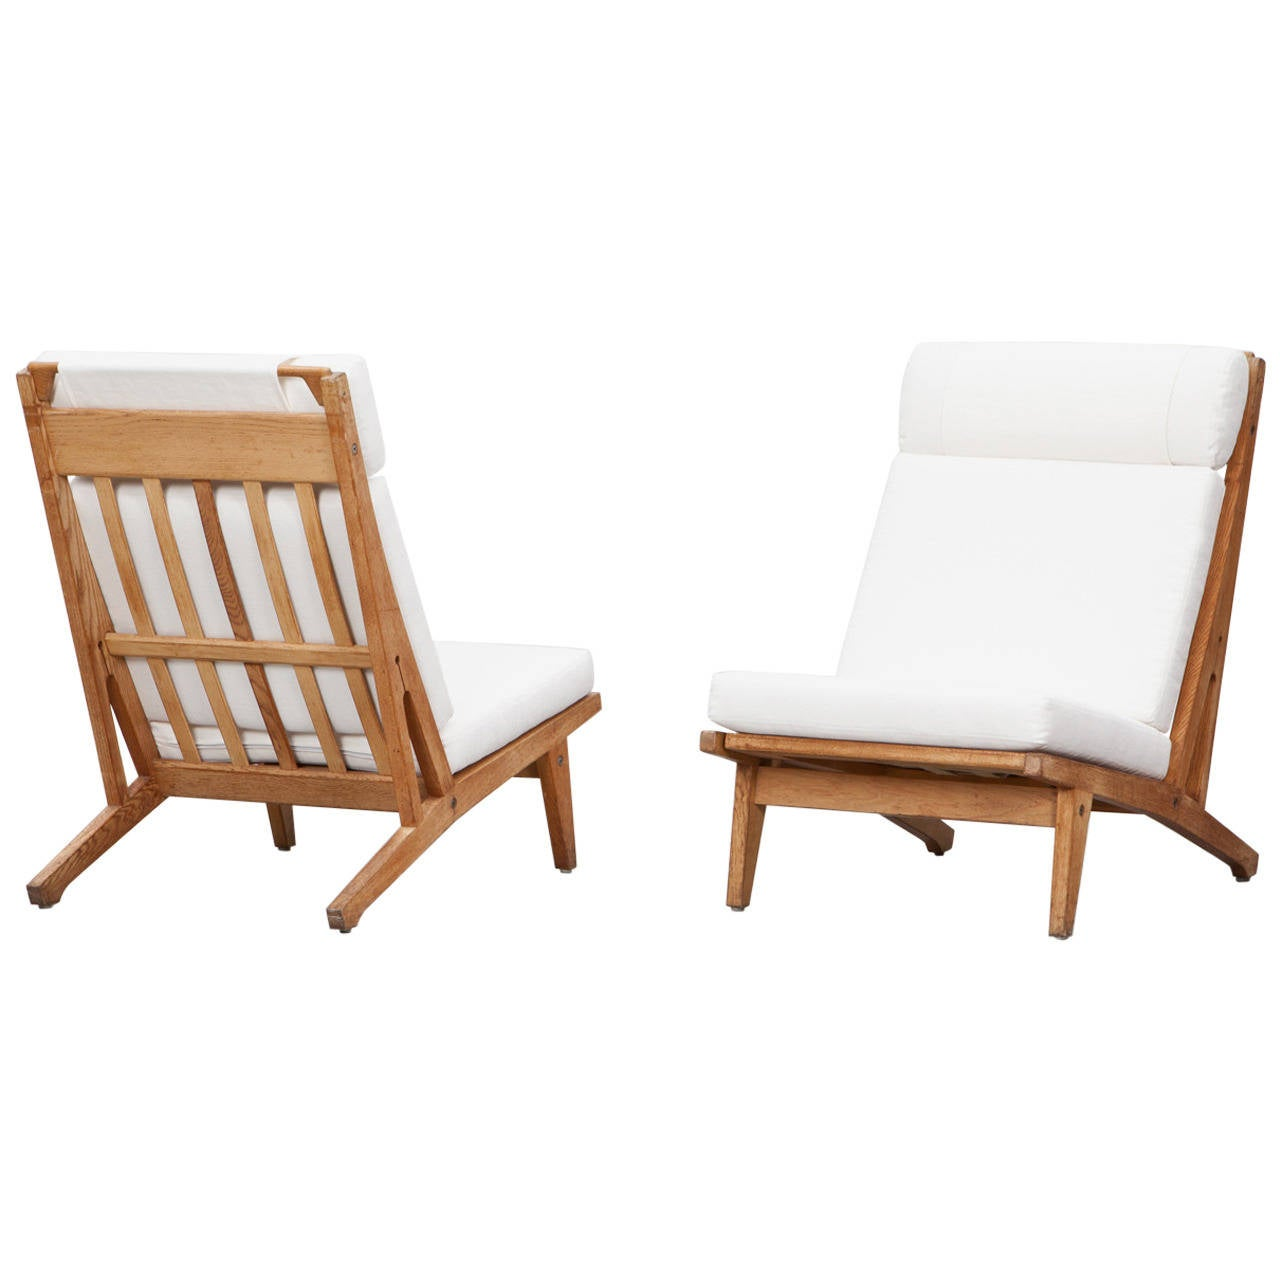 Hans wegner lounge chair - Hans Wegner Lounge Chairs With White Cushions New Upholstery 1